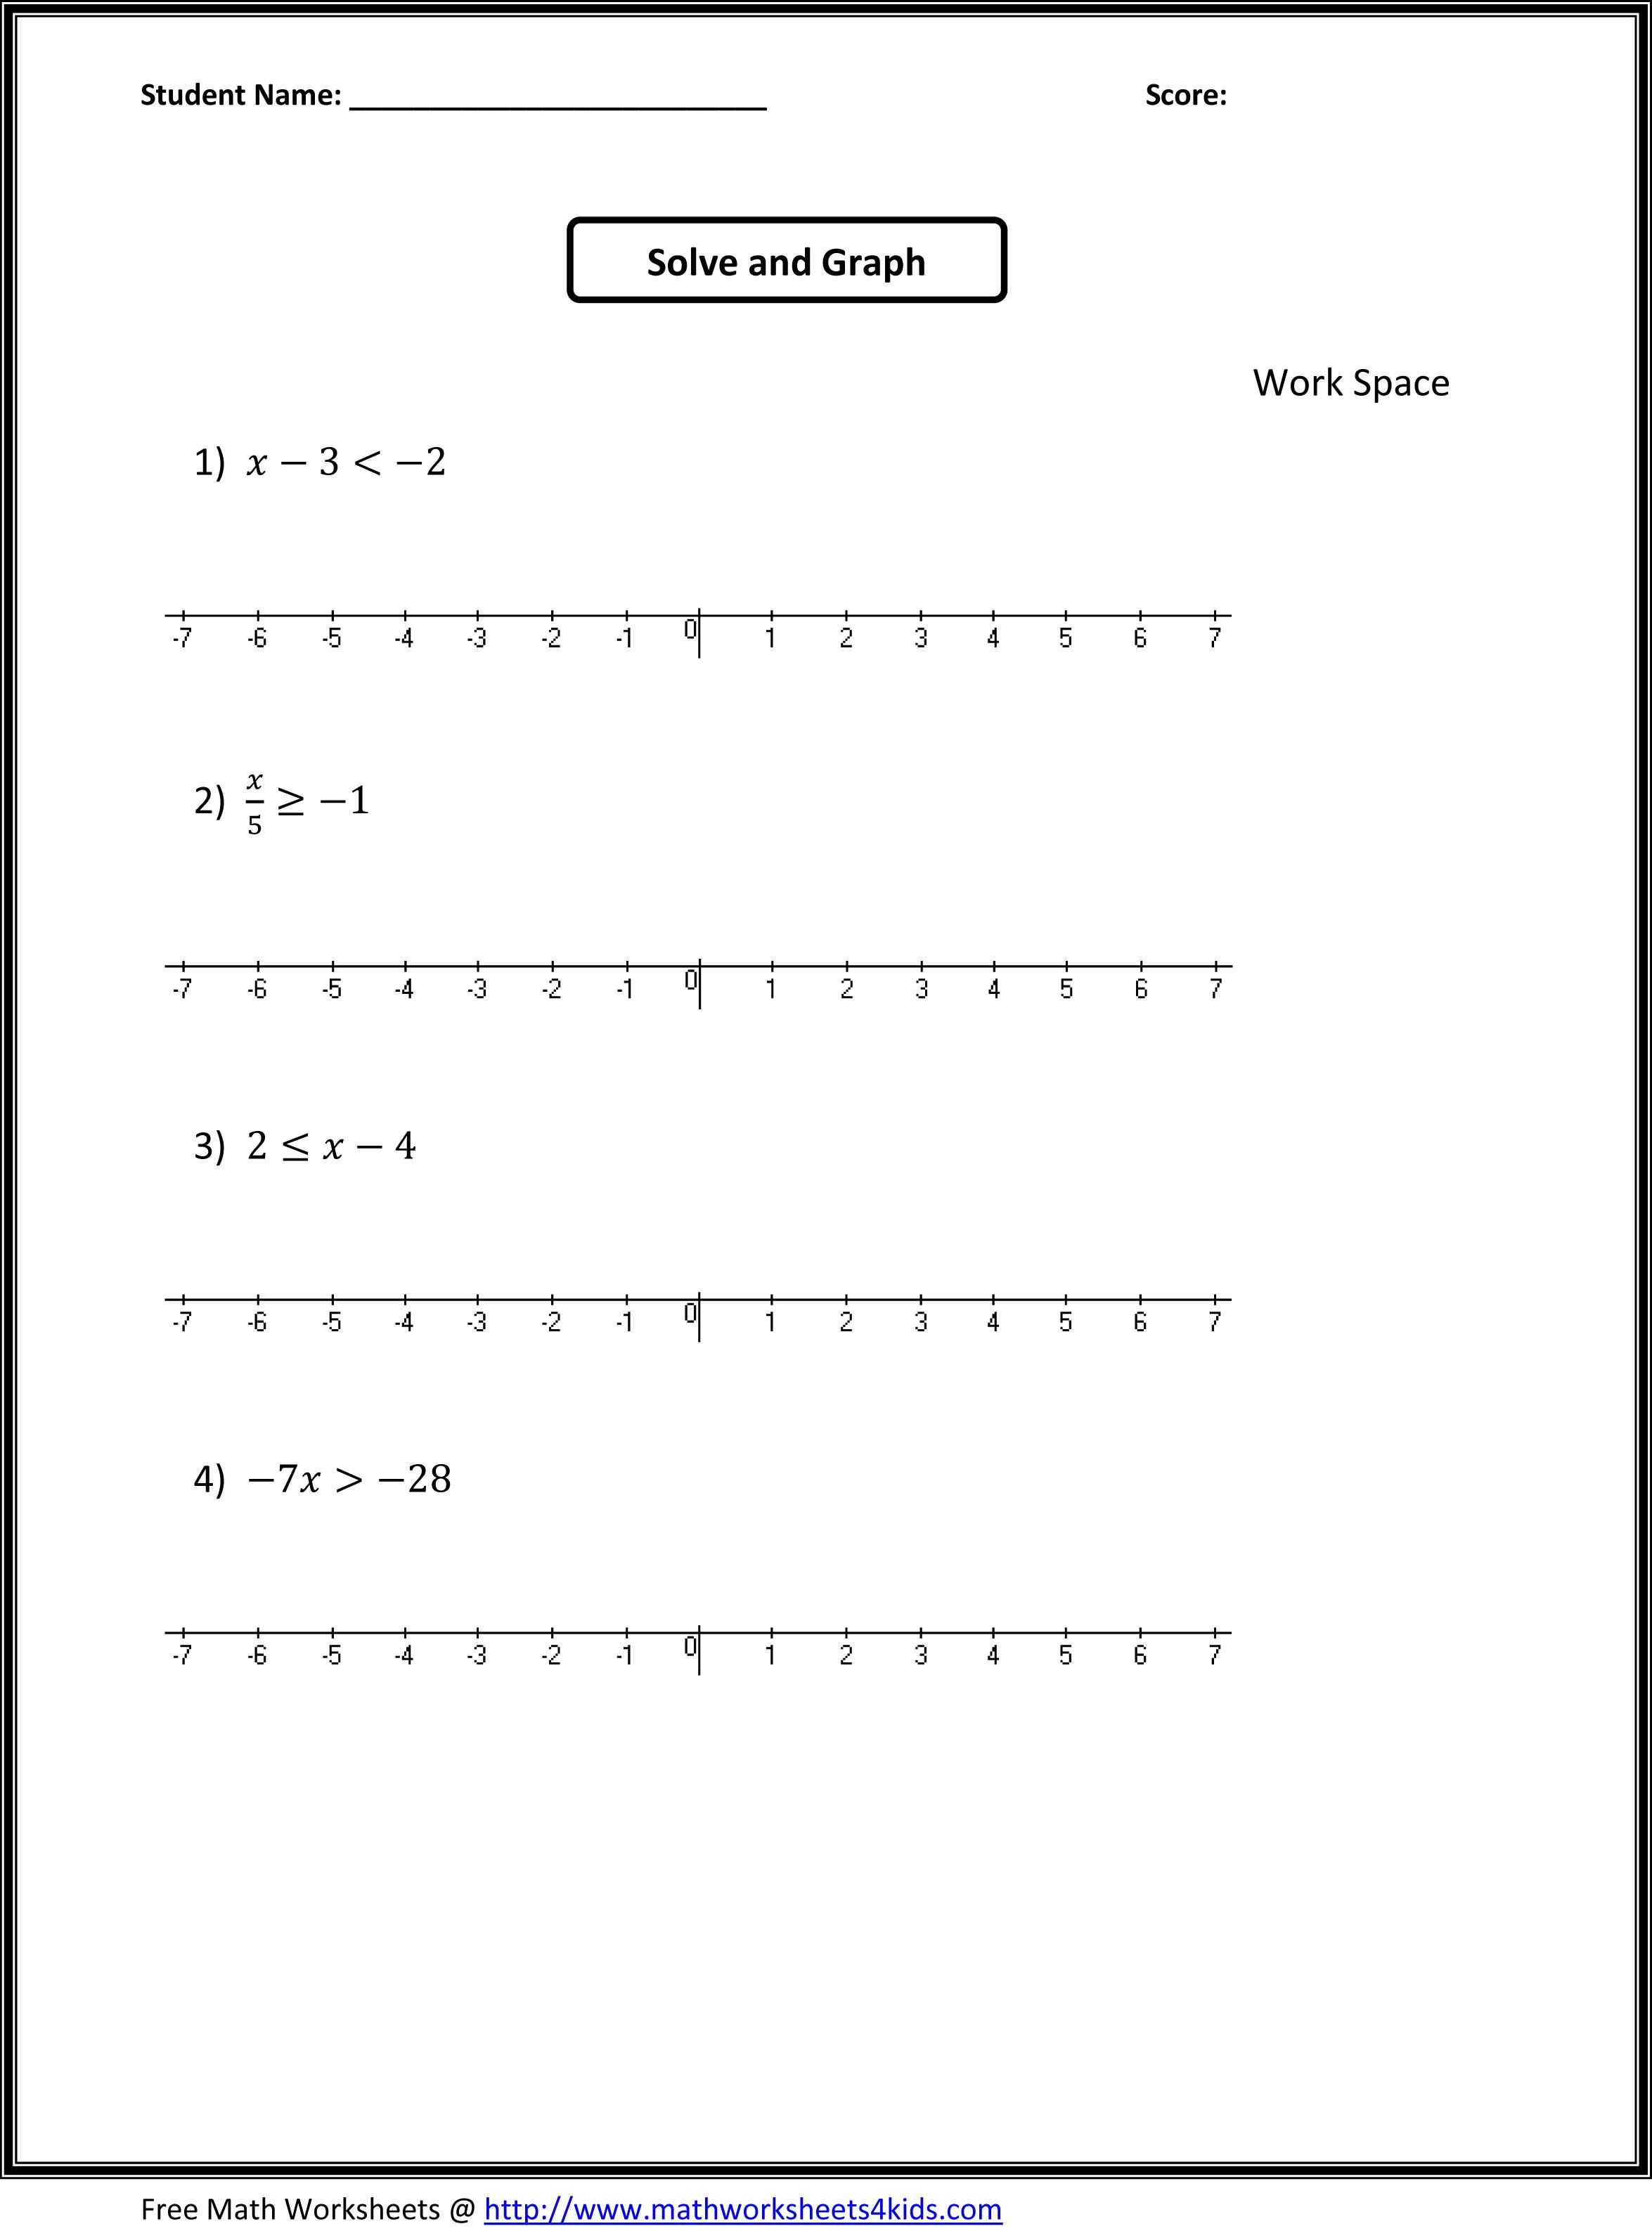 Free Printable 7th Grade Math Worksheets 2 In 2020 7th Grade Math Worksheets Algebra Worksheets 7th Grade Math